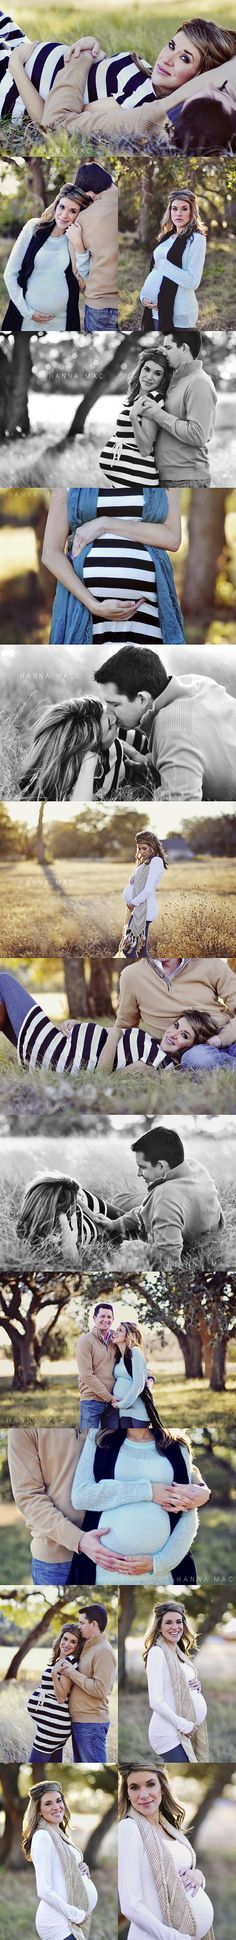 Best pregnancy pictures I've seen. Classy